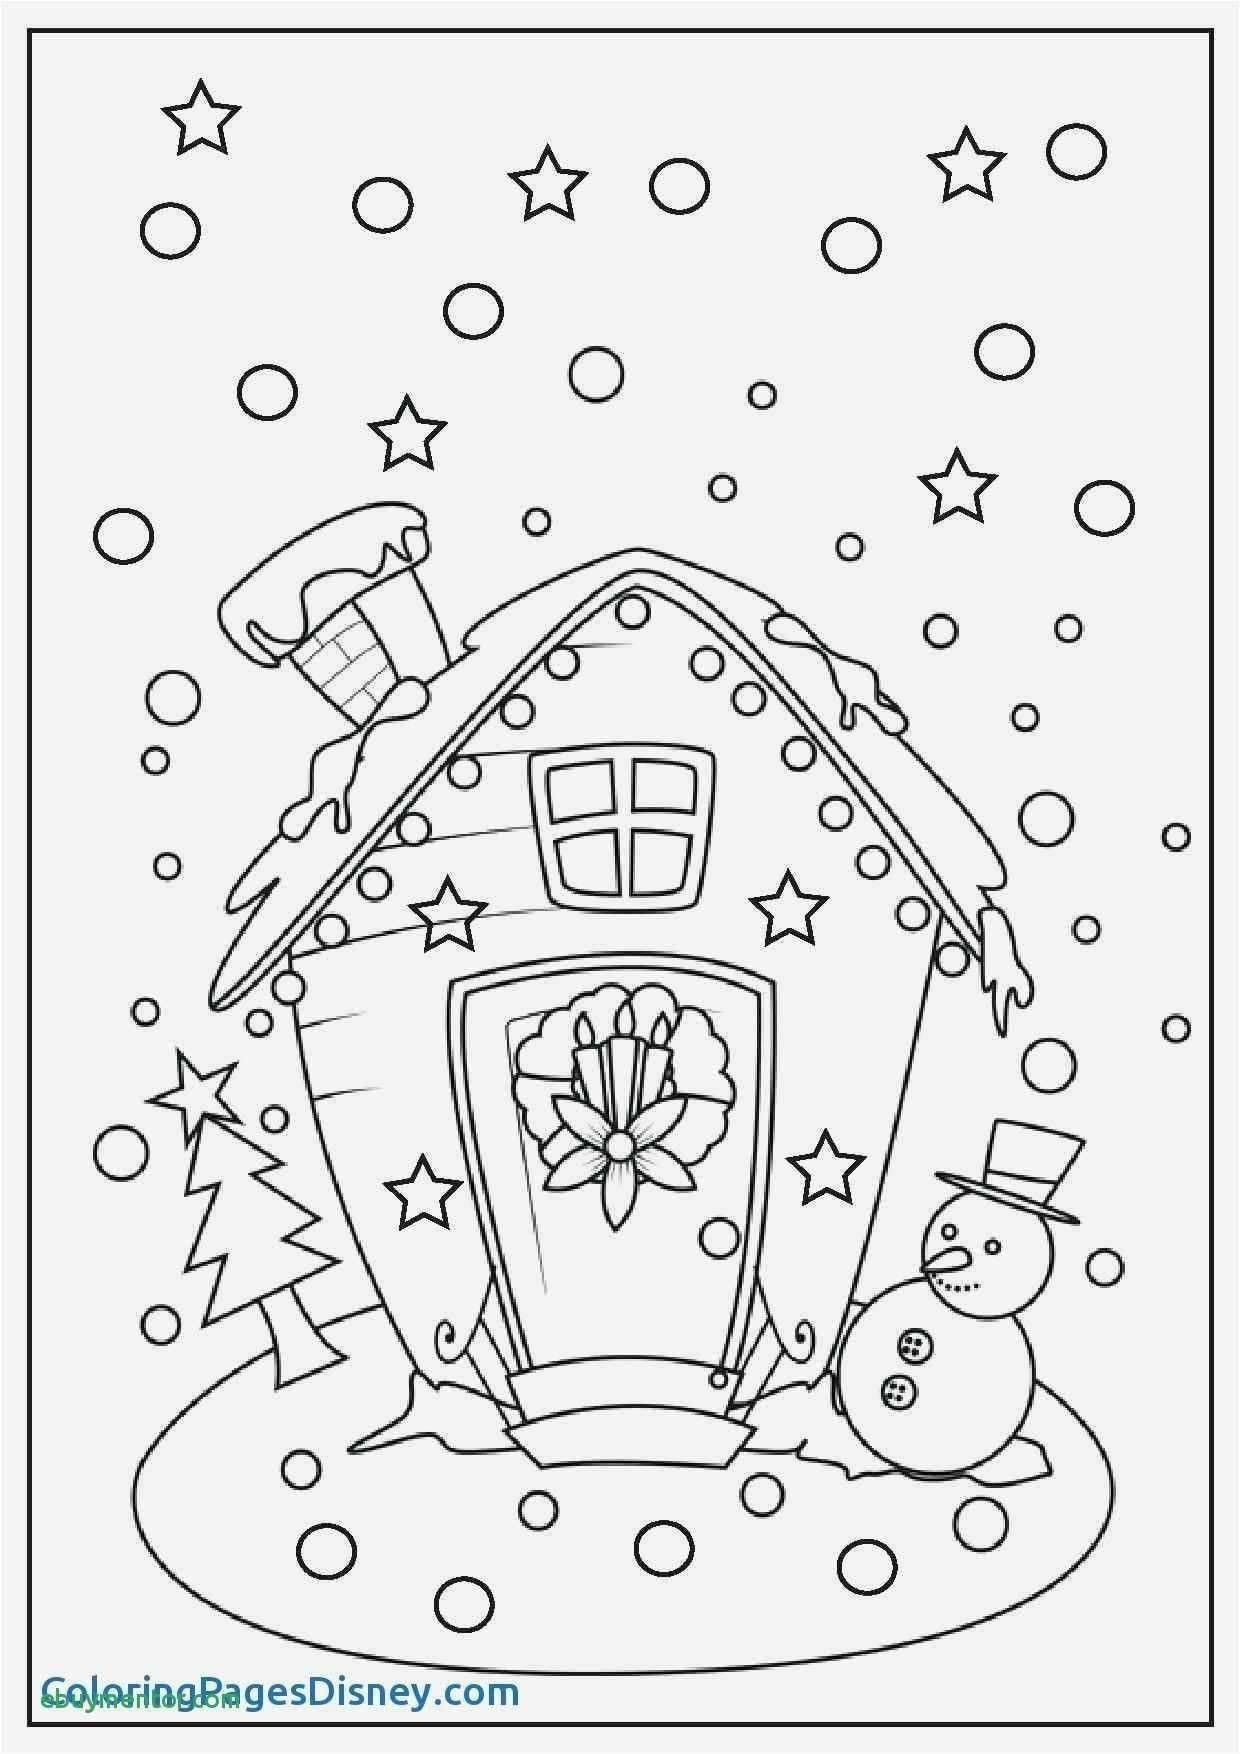 Pin Di Coloring Pages